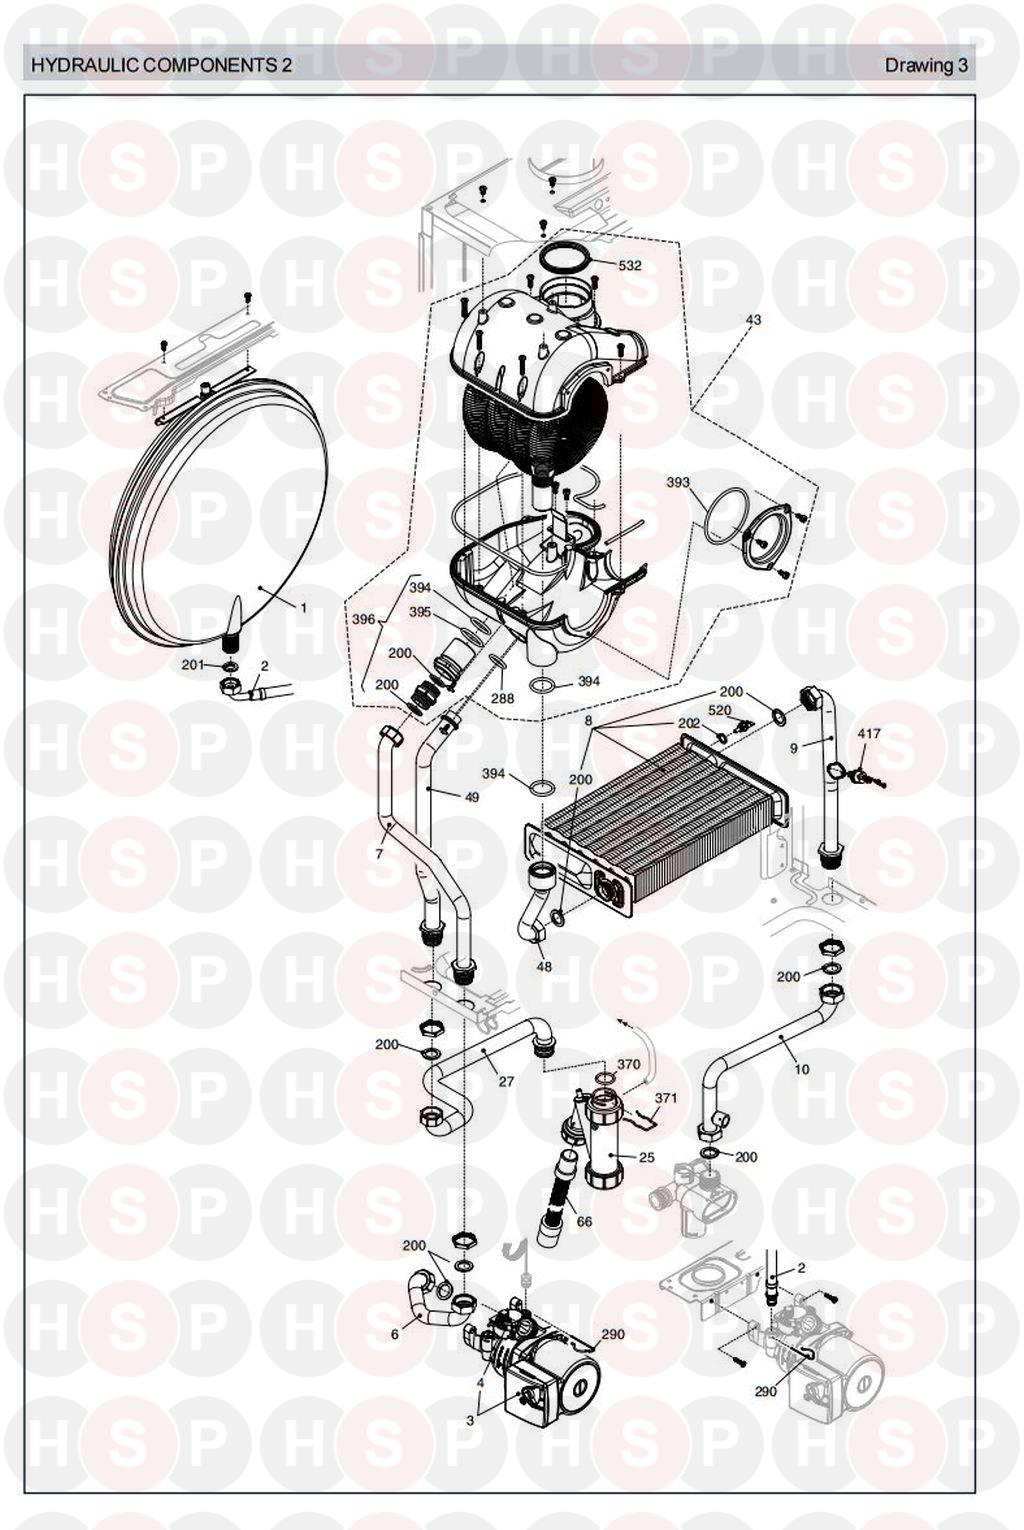 Vokera Sabre 25 He Hydraulics 2 Diagram Heating Spare Parts Engine Click The To Open It On A New Page